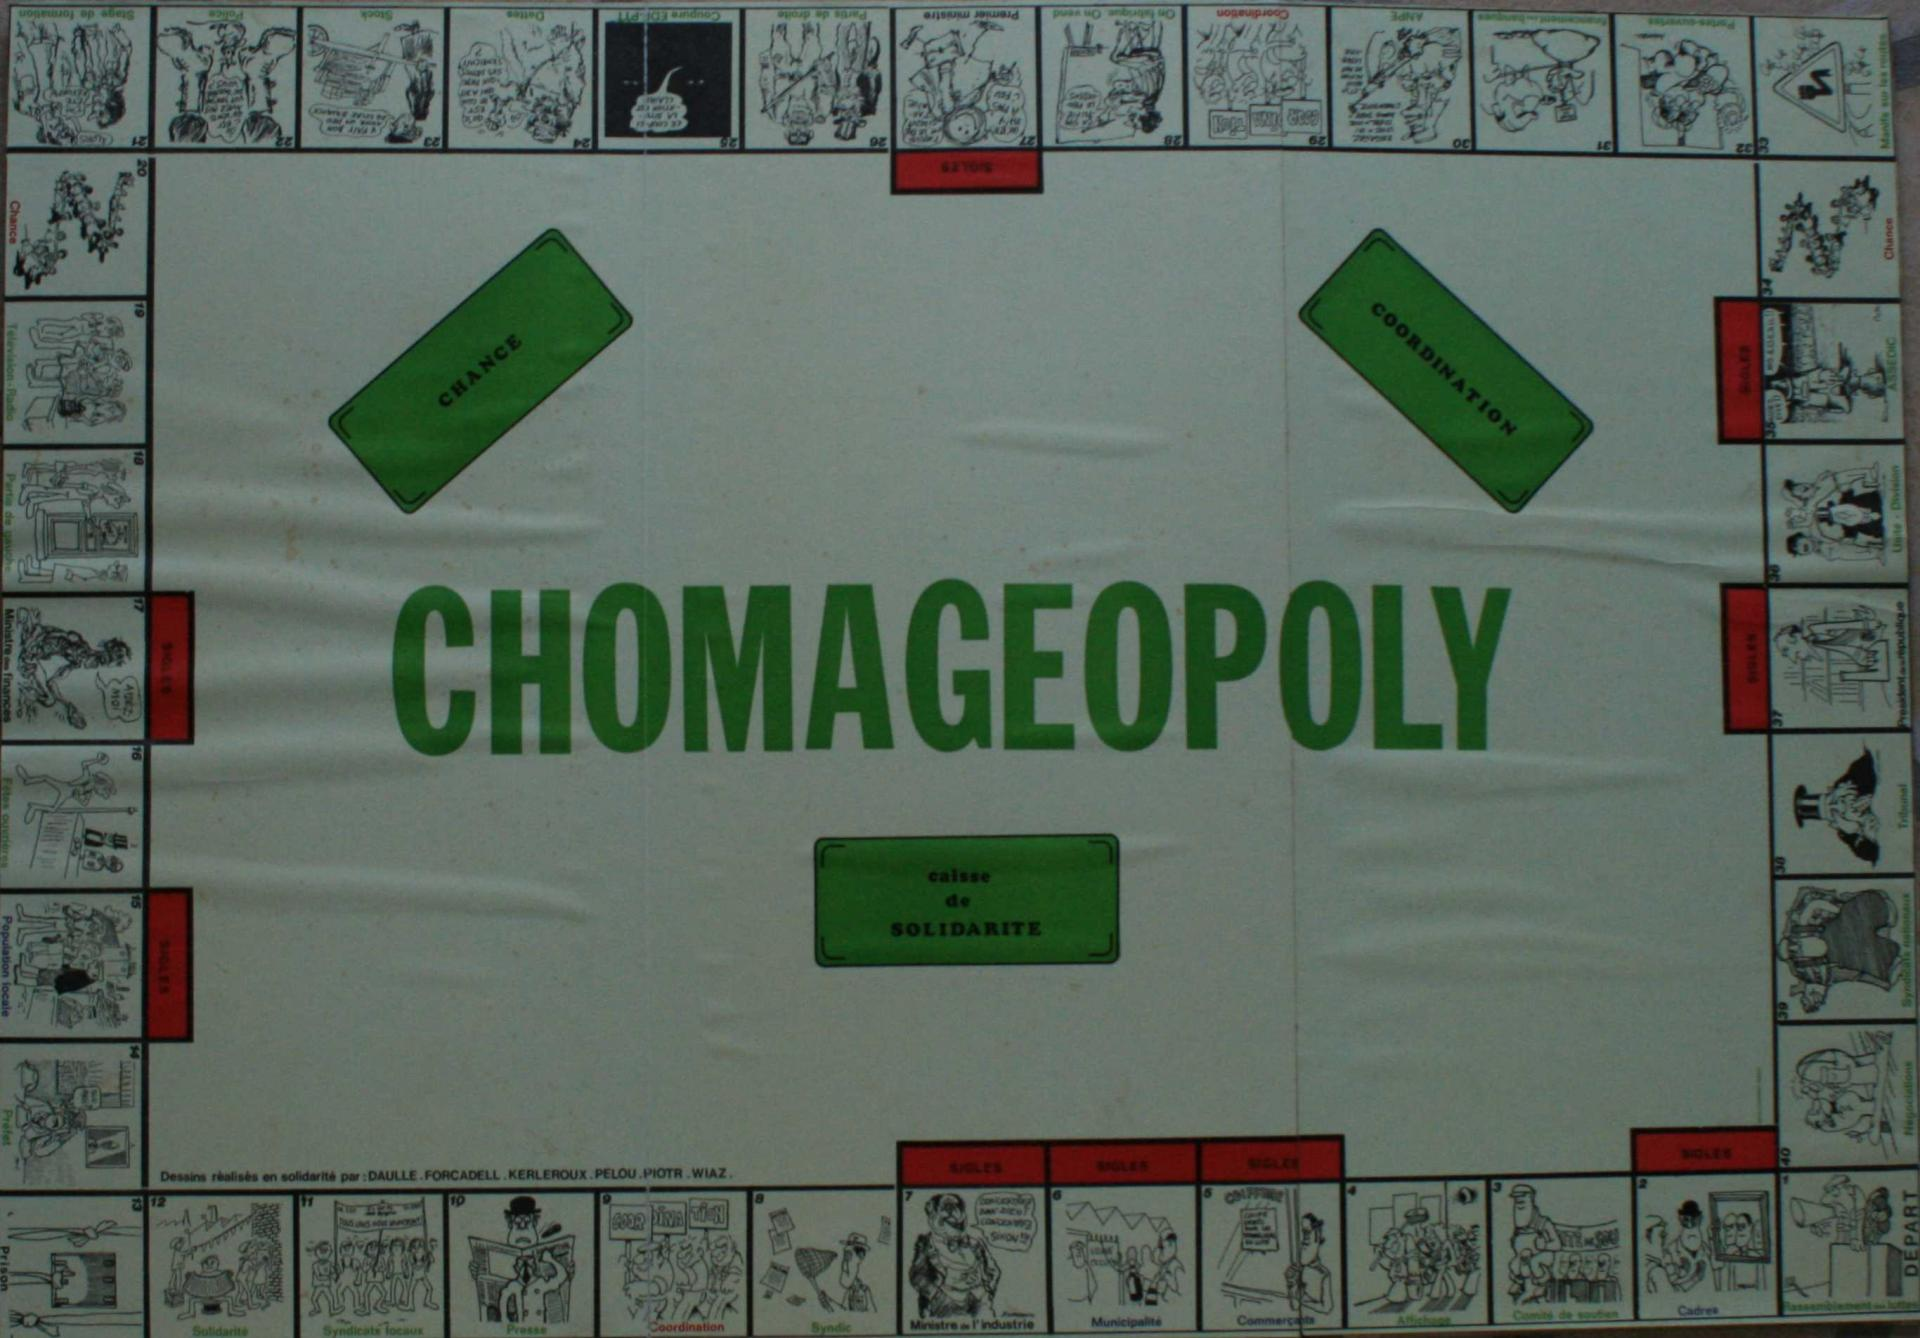 Le Chomageopoly